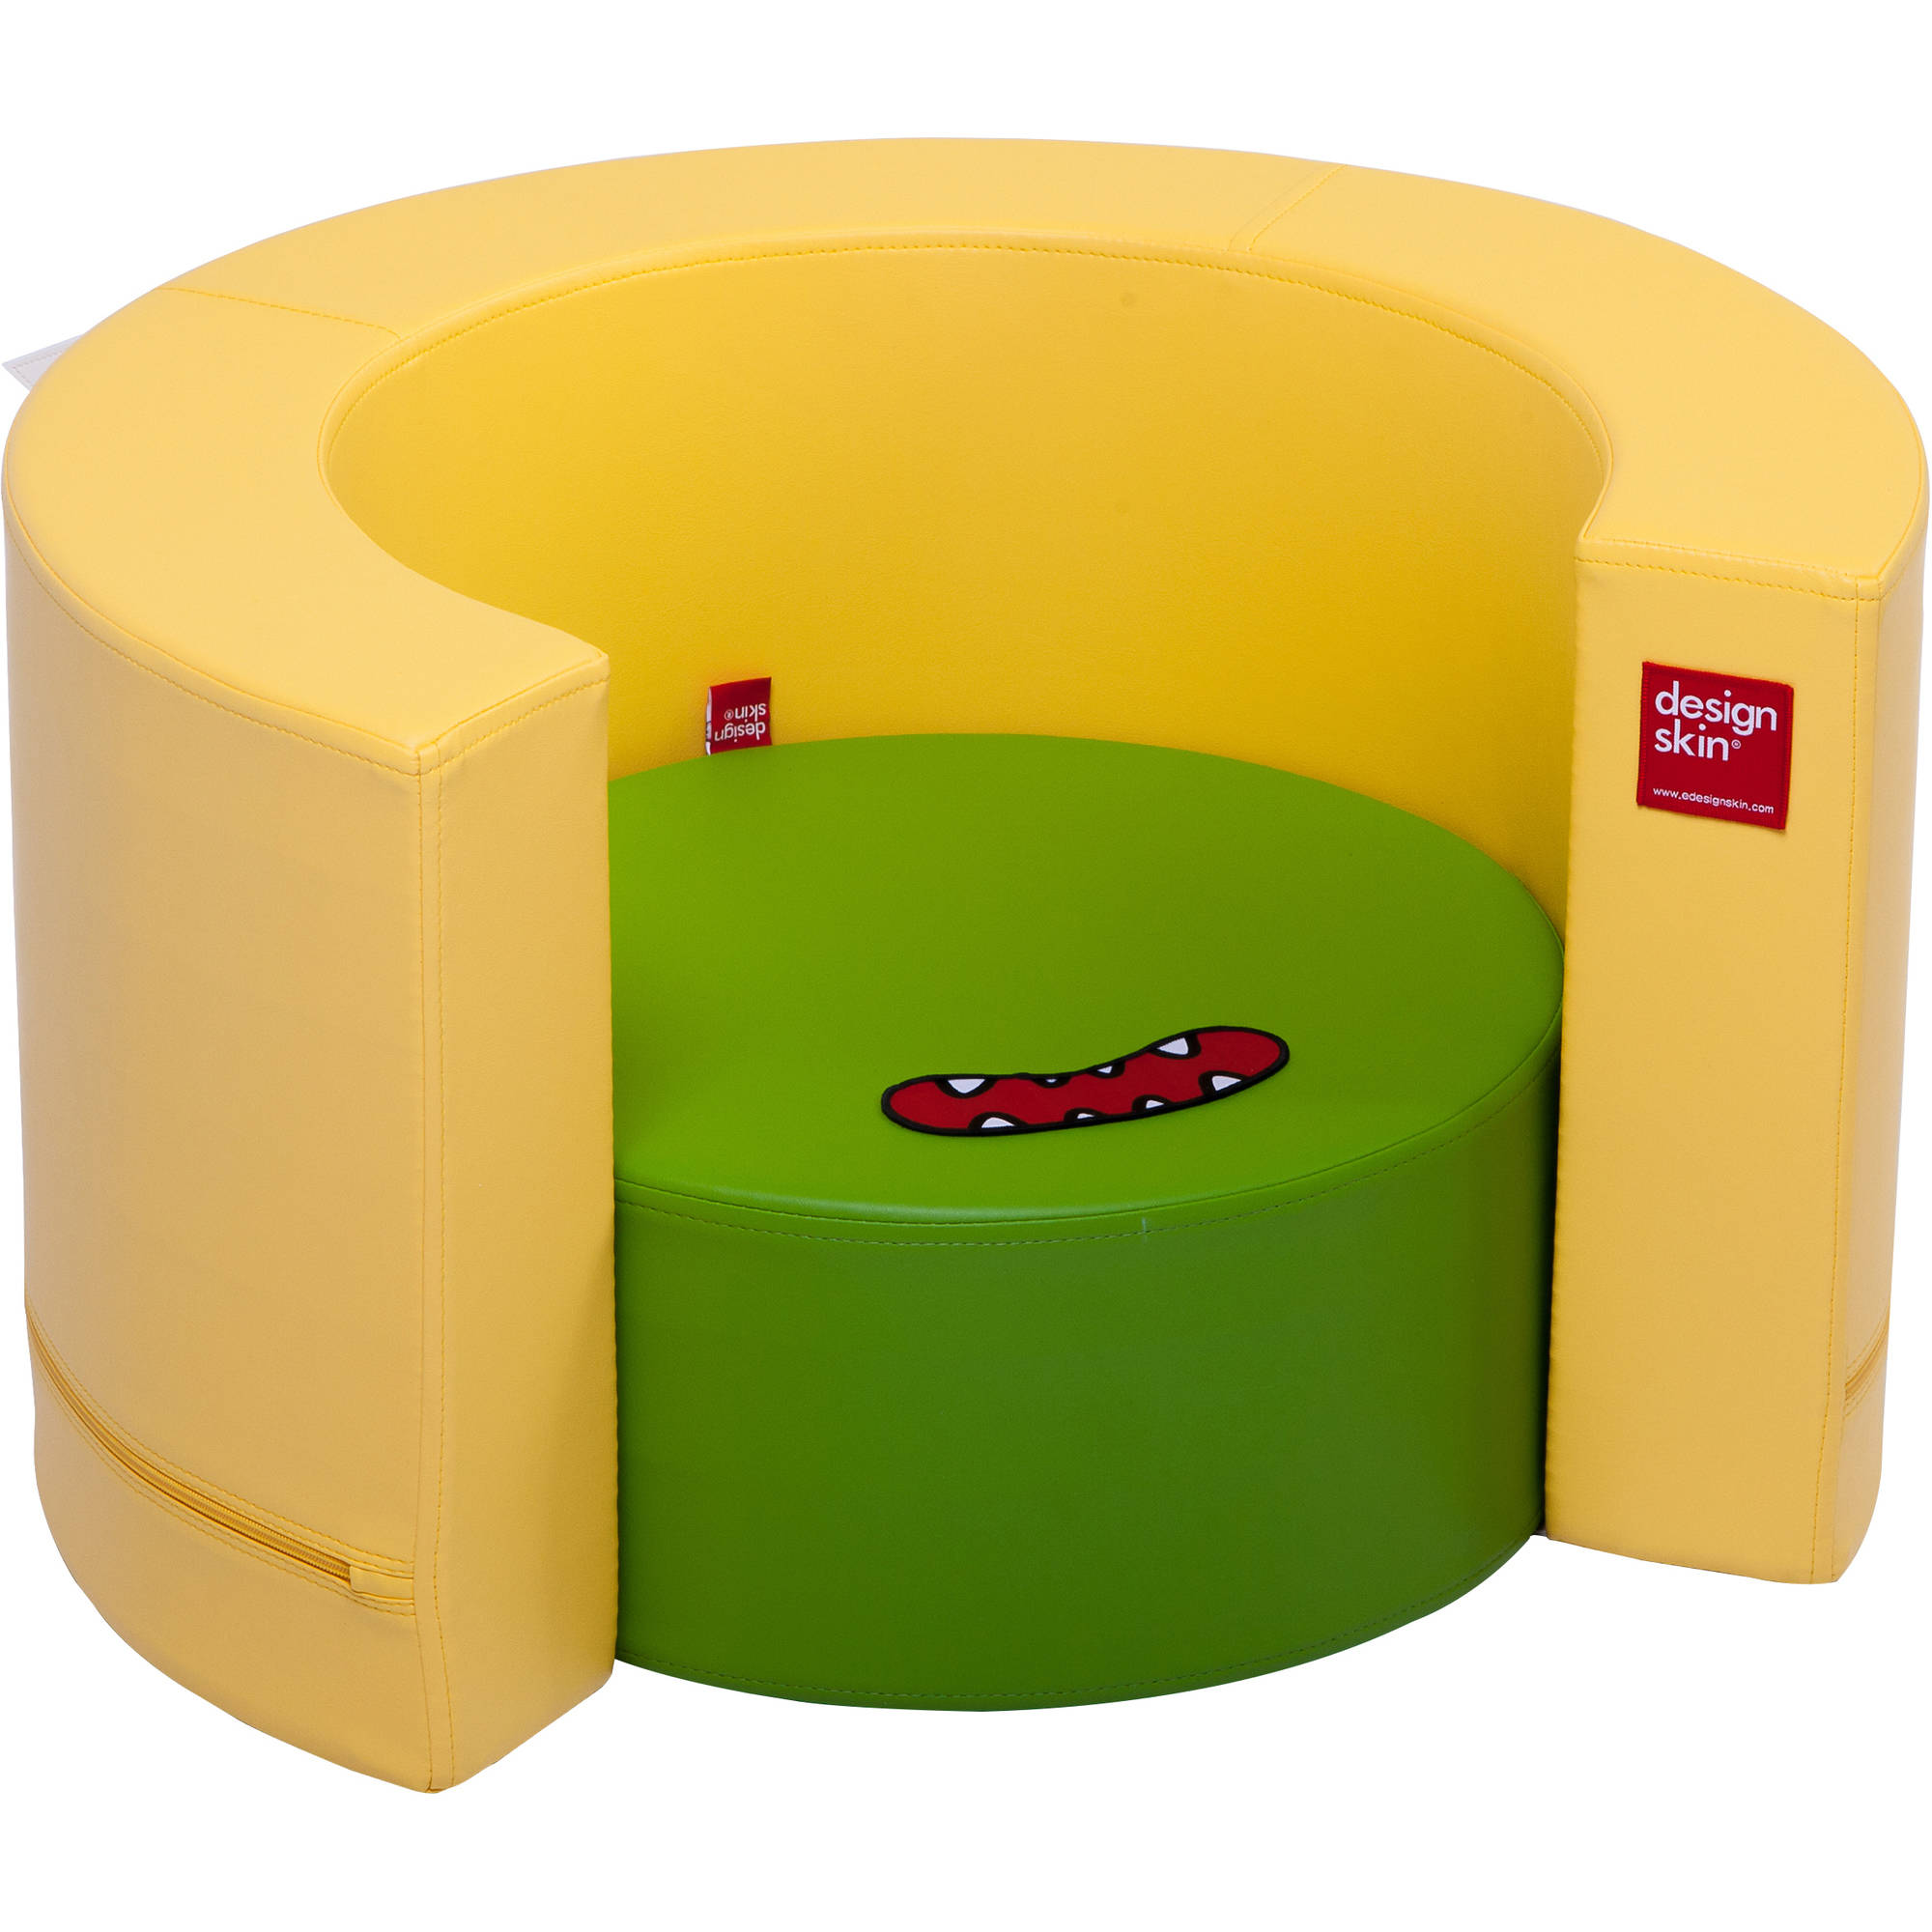 Tunnel Sofa Transforamble Furniture for Kids, Green & Yellow